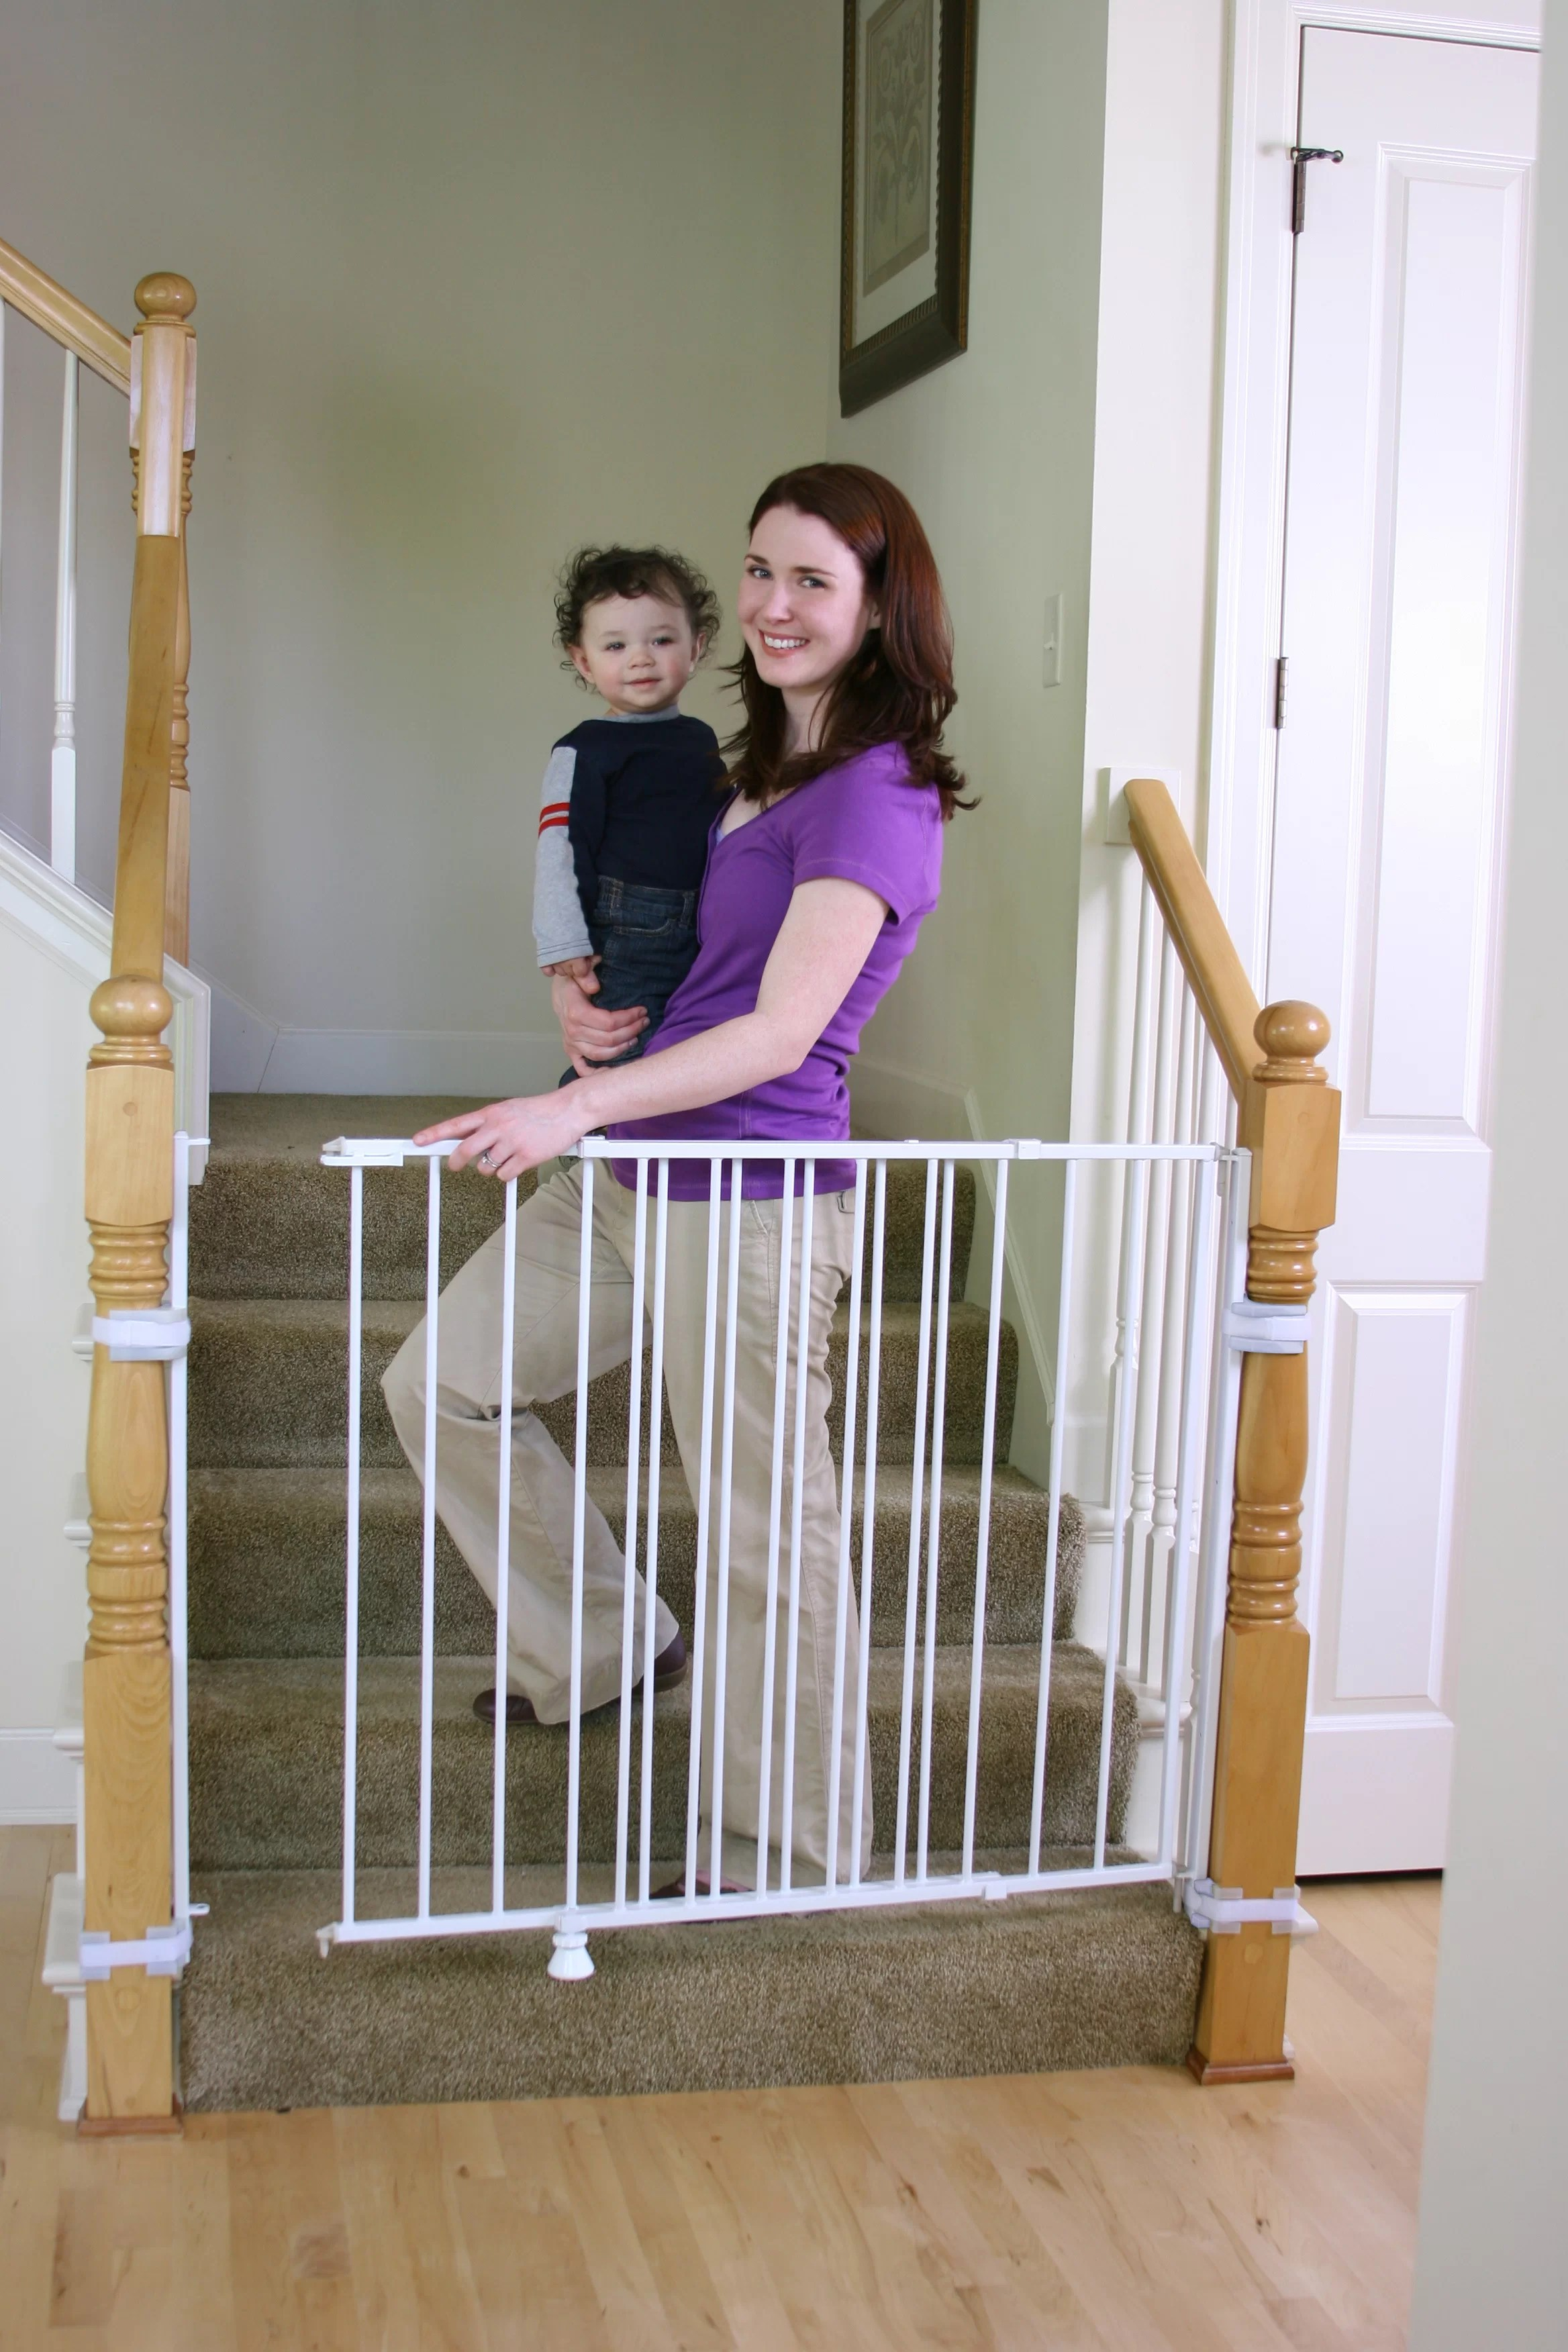 Baby Gate With Only One Wall : Regalo, Stairs, Extra, Safety, Reviews, Wayfair